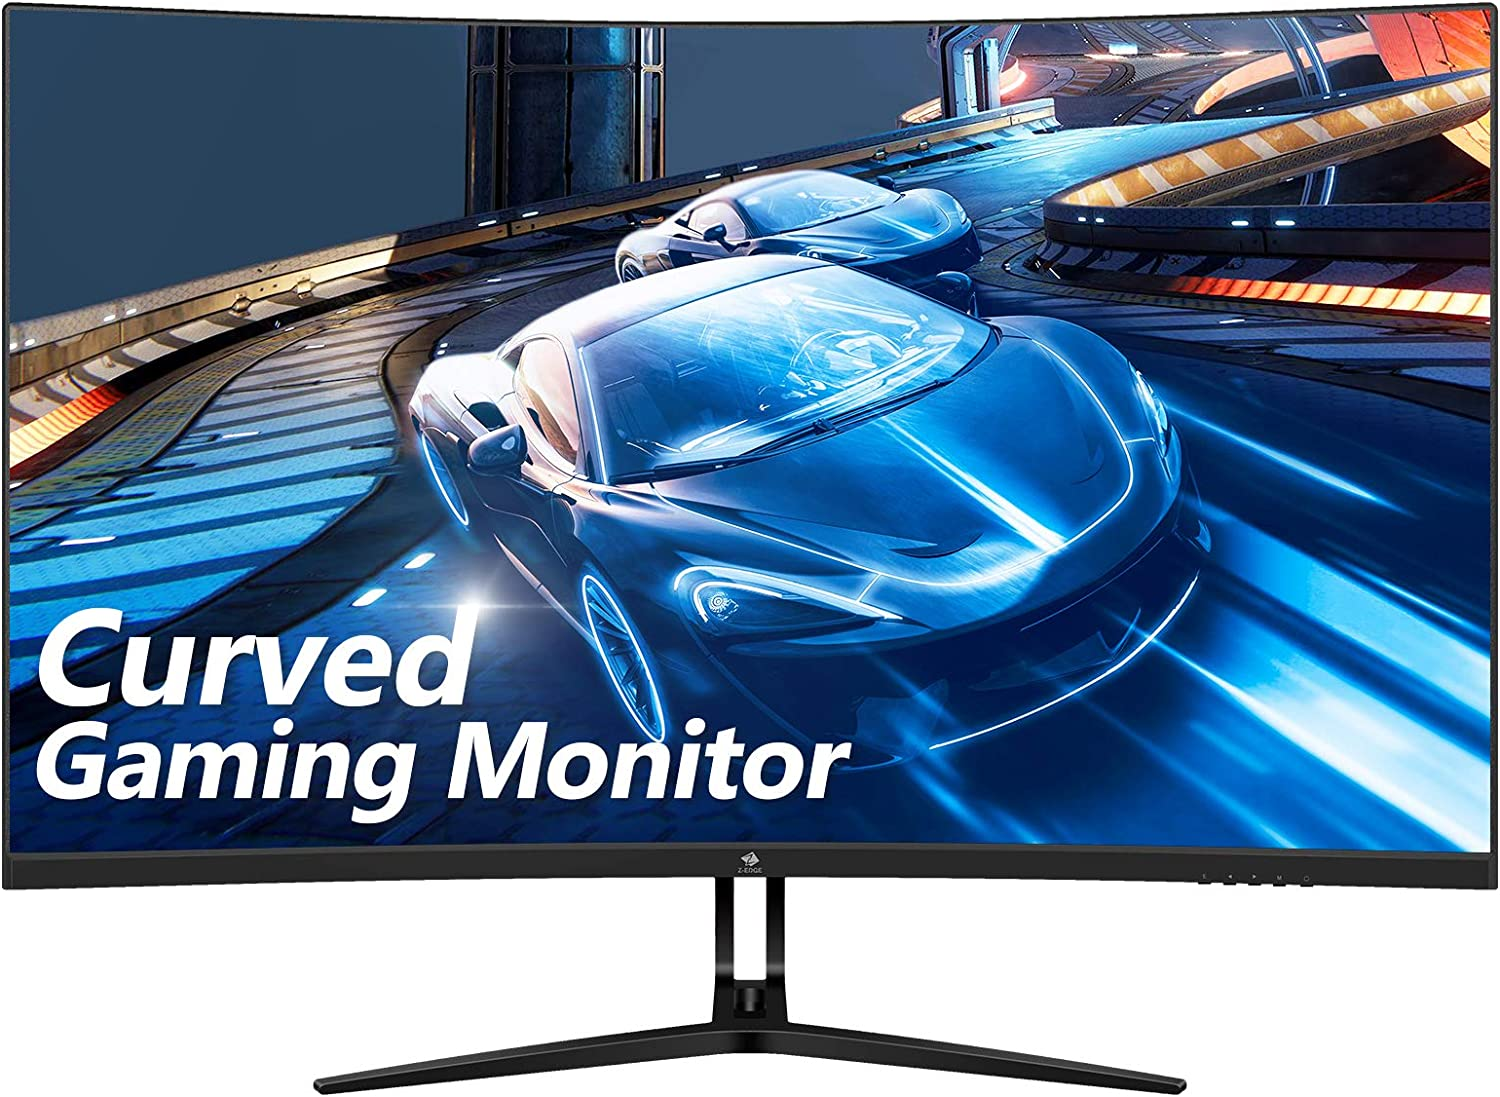 Z-Edge 32-inch Curved Gaming Monitor 16:9 1920x1080 165/144Hz 1ms Frameless LED Gaming Monitor, AMD Freesync Premium Display Port HDMI Build-in Speakers